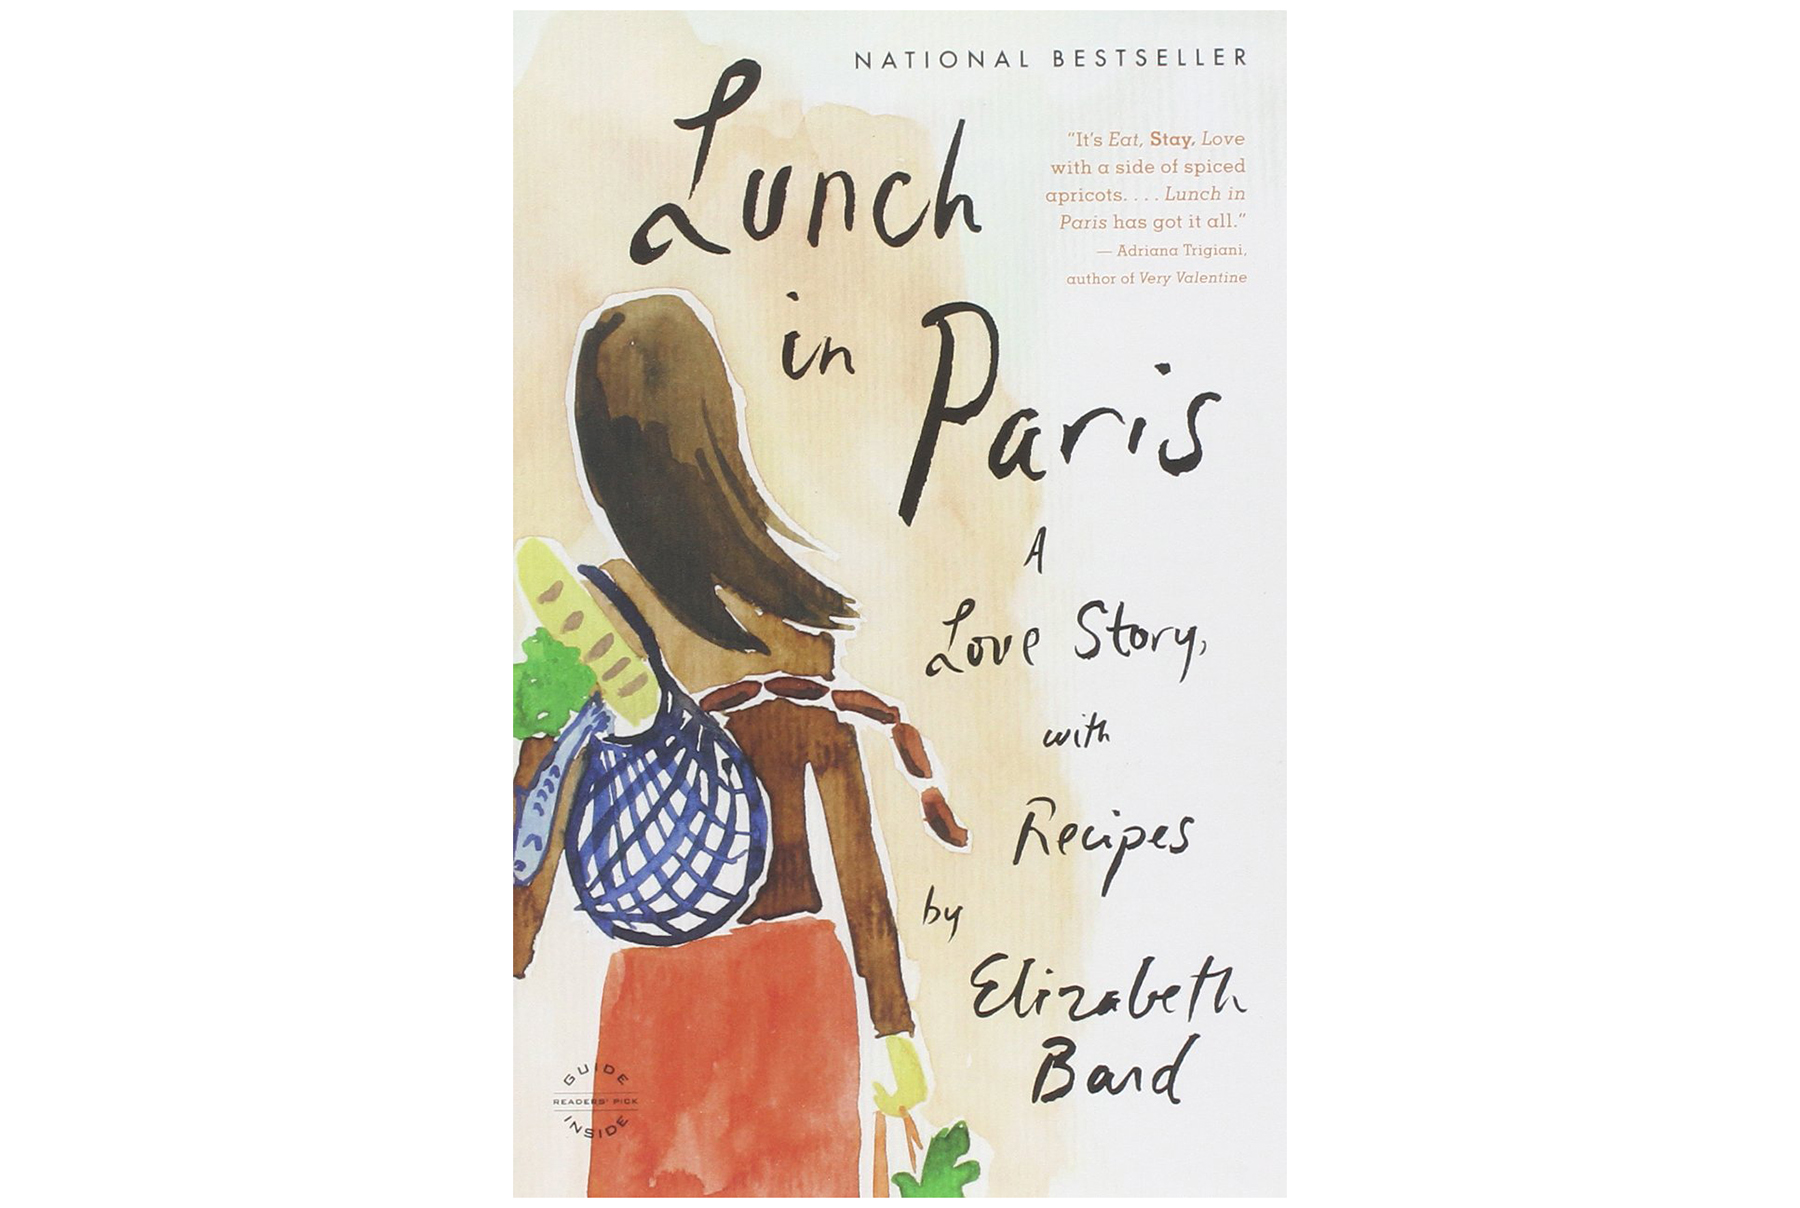 Lunch in Paris: A Love Story, with Recipes, by Elizabeth Bard